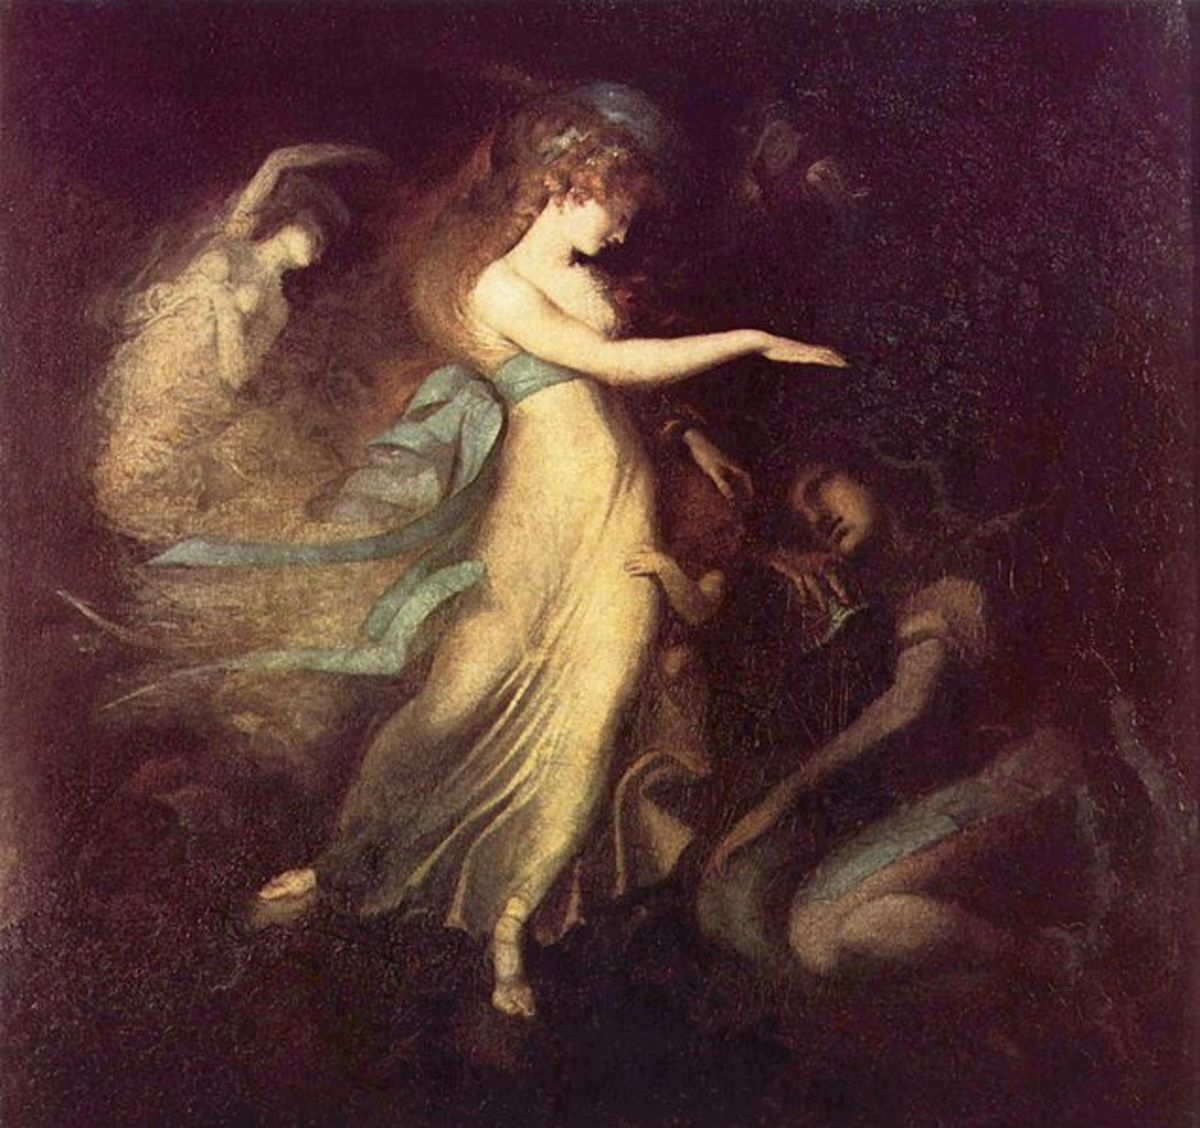 Illustration from Spenser's Faerie Queen